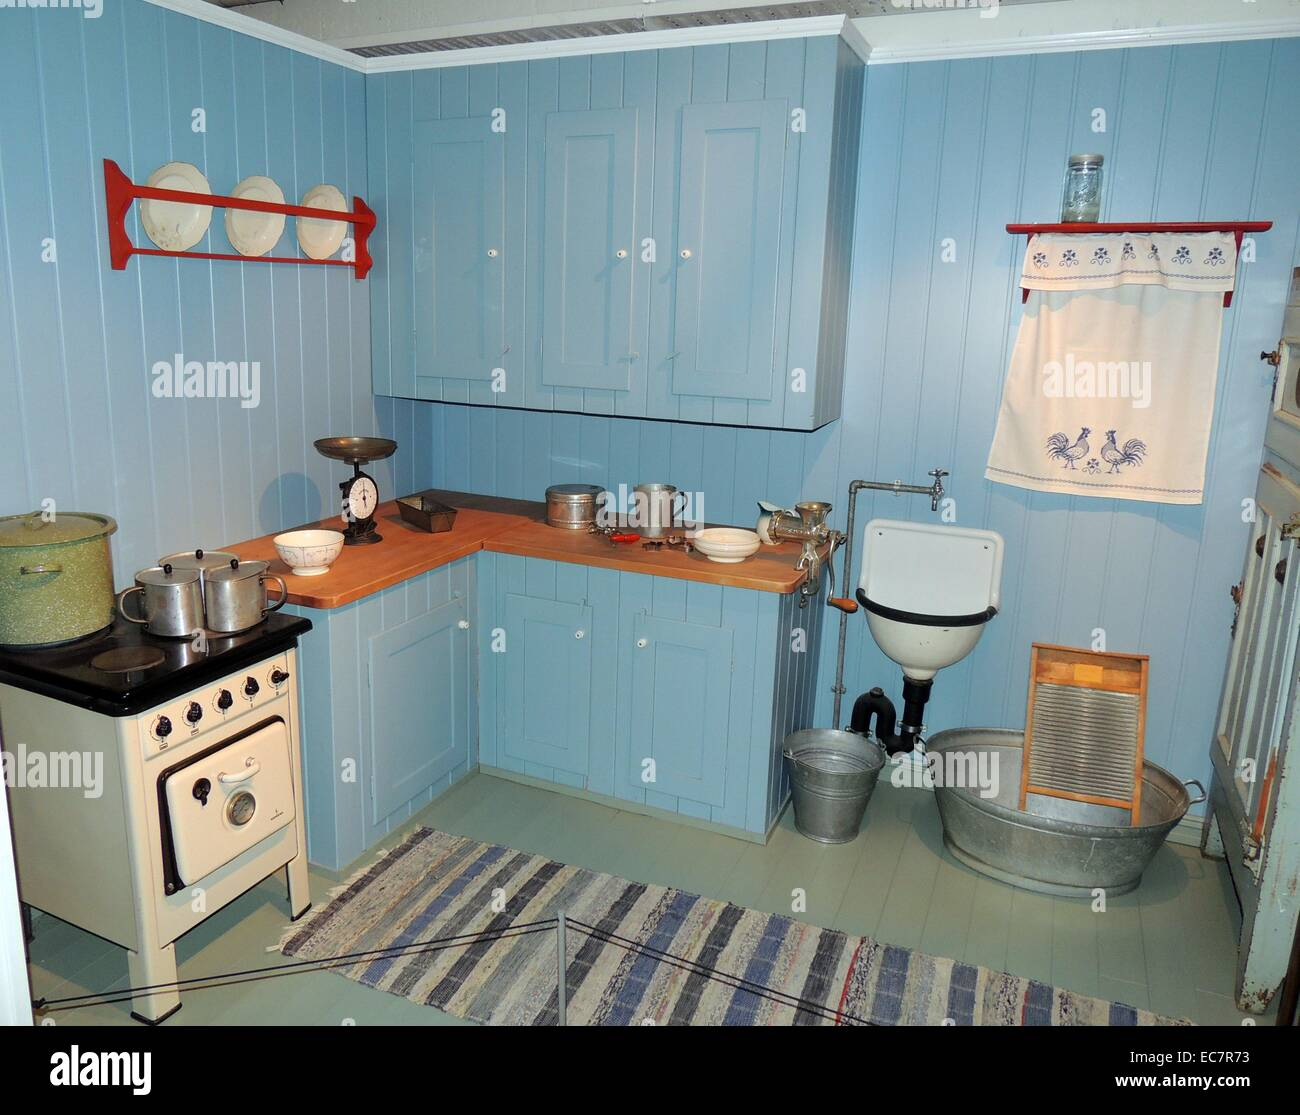 Kitchen Appliances Cooker Stock Photos & Kitchen Appliances Cooker ...